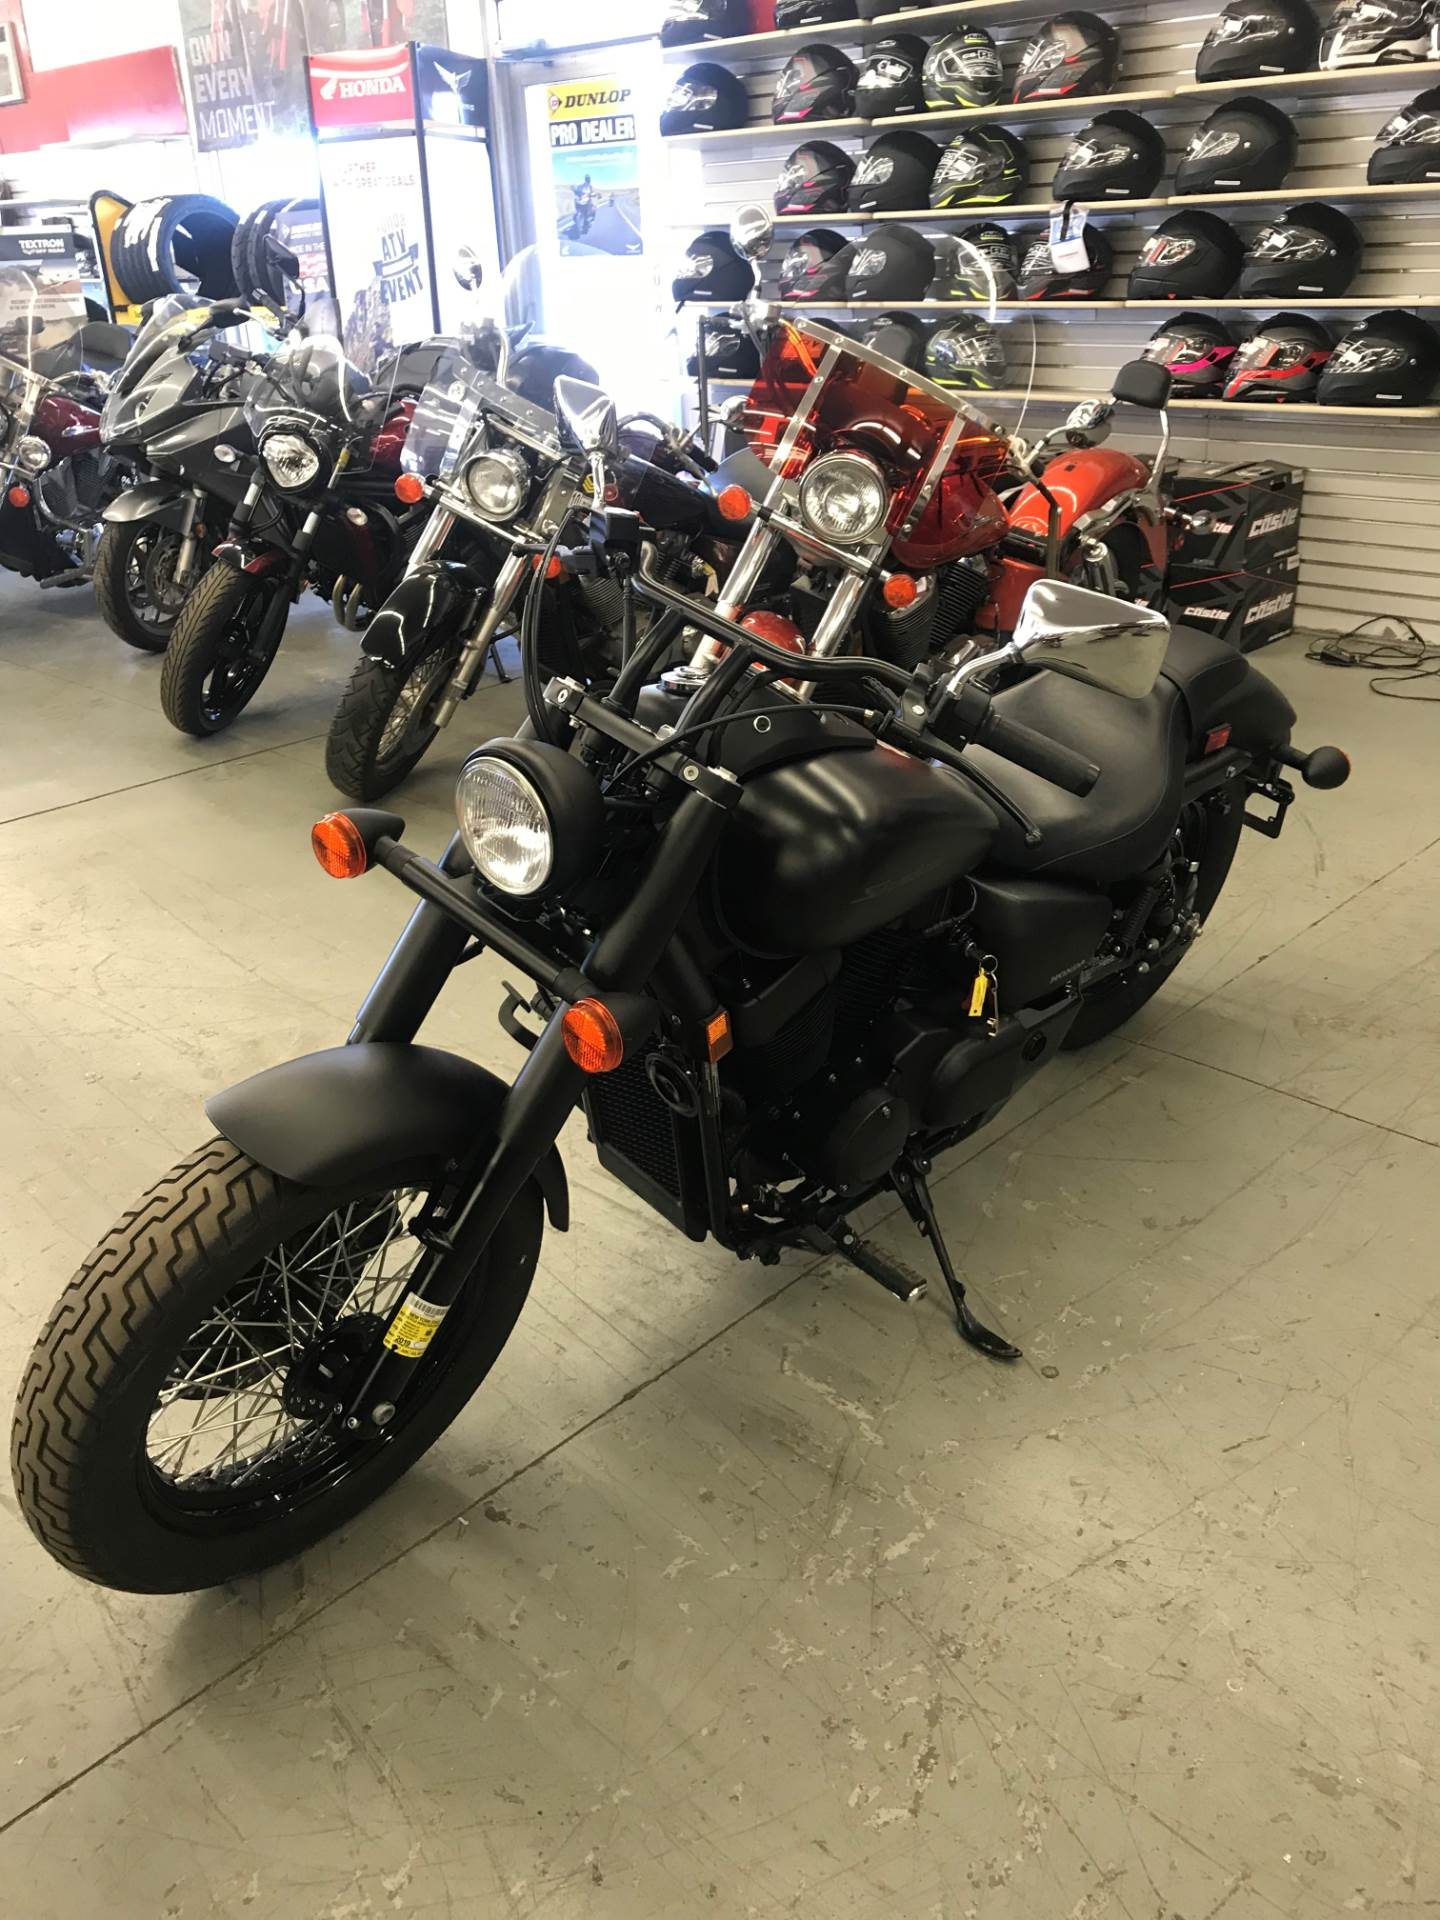 2017 Honda Shadow750 Phantom in Hamburg, New York